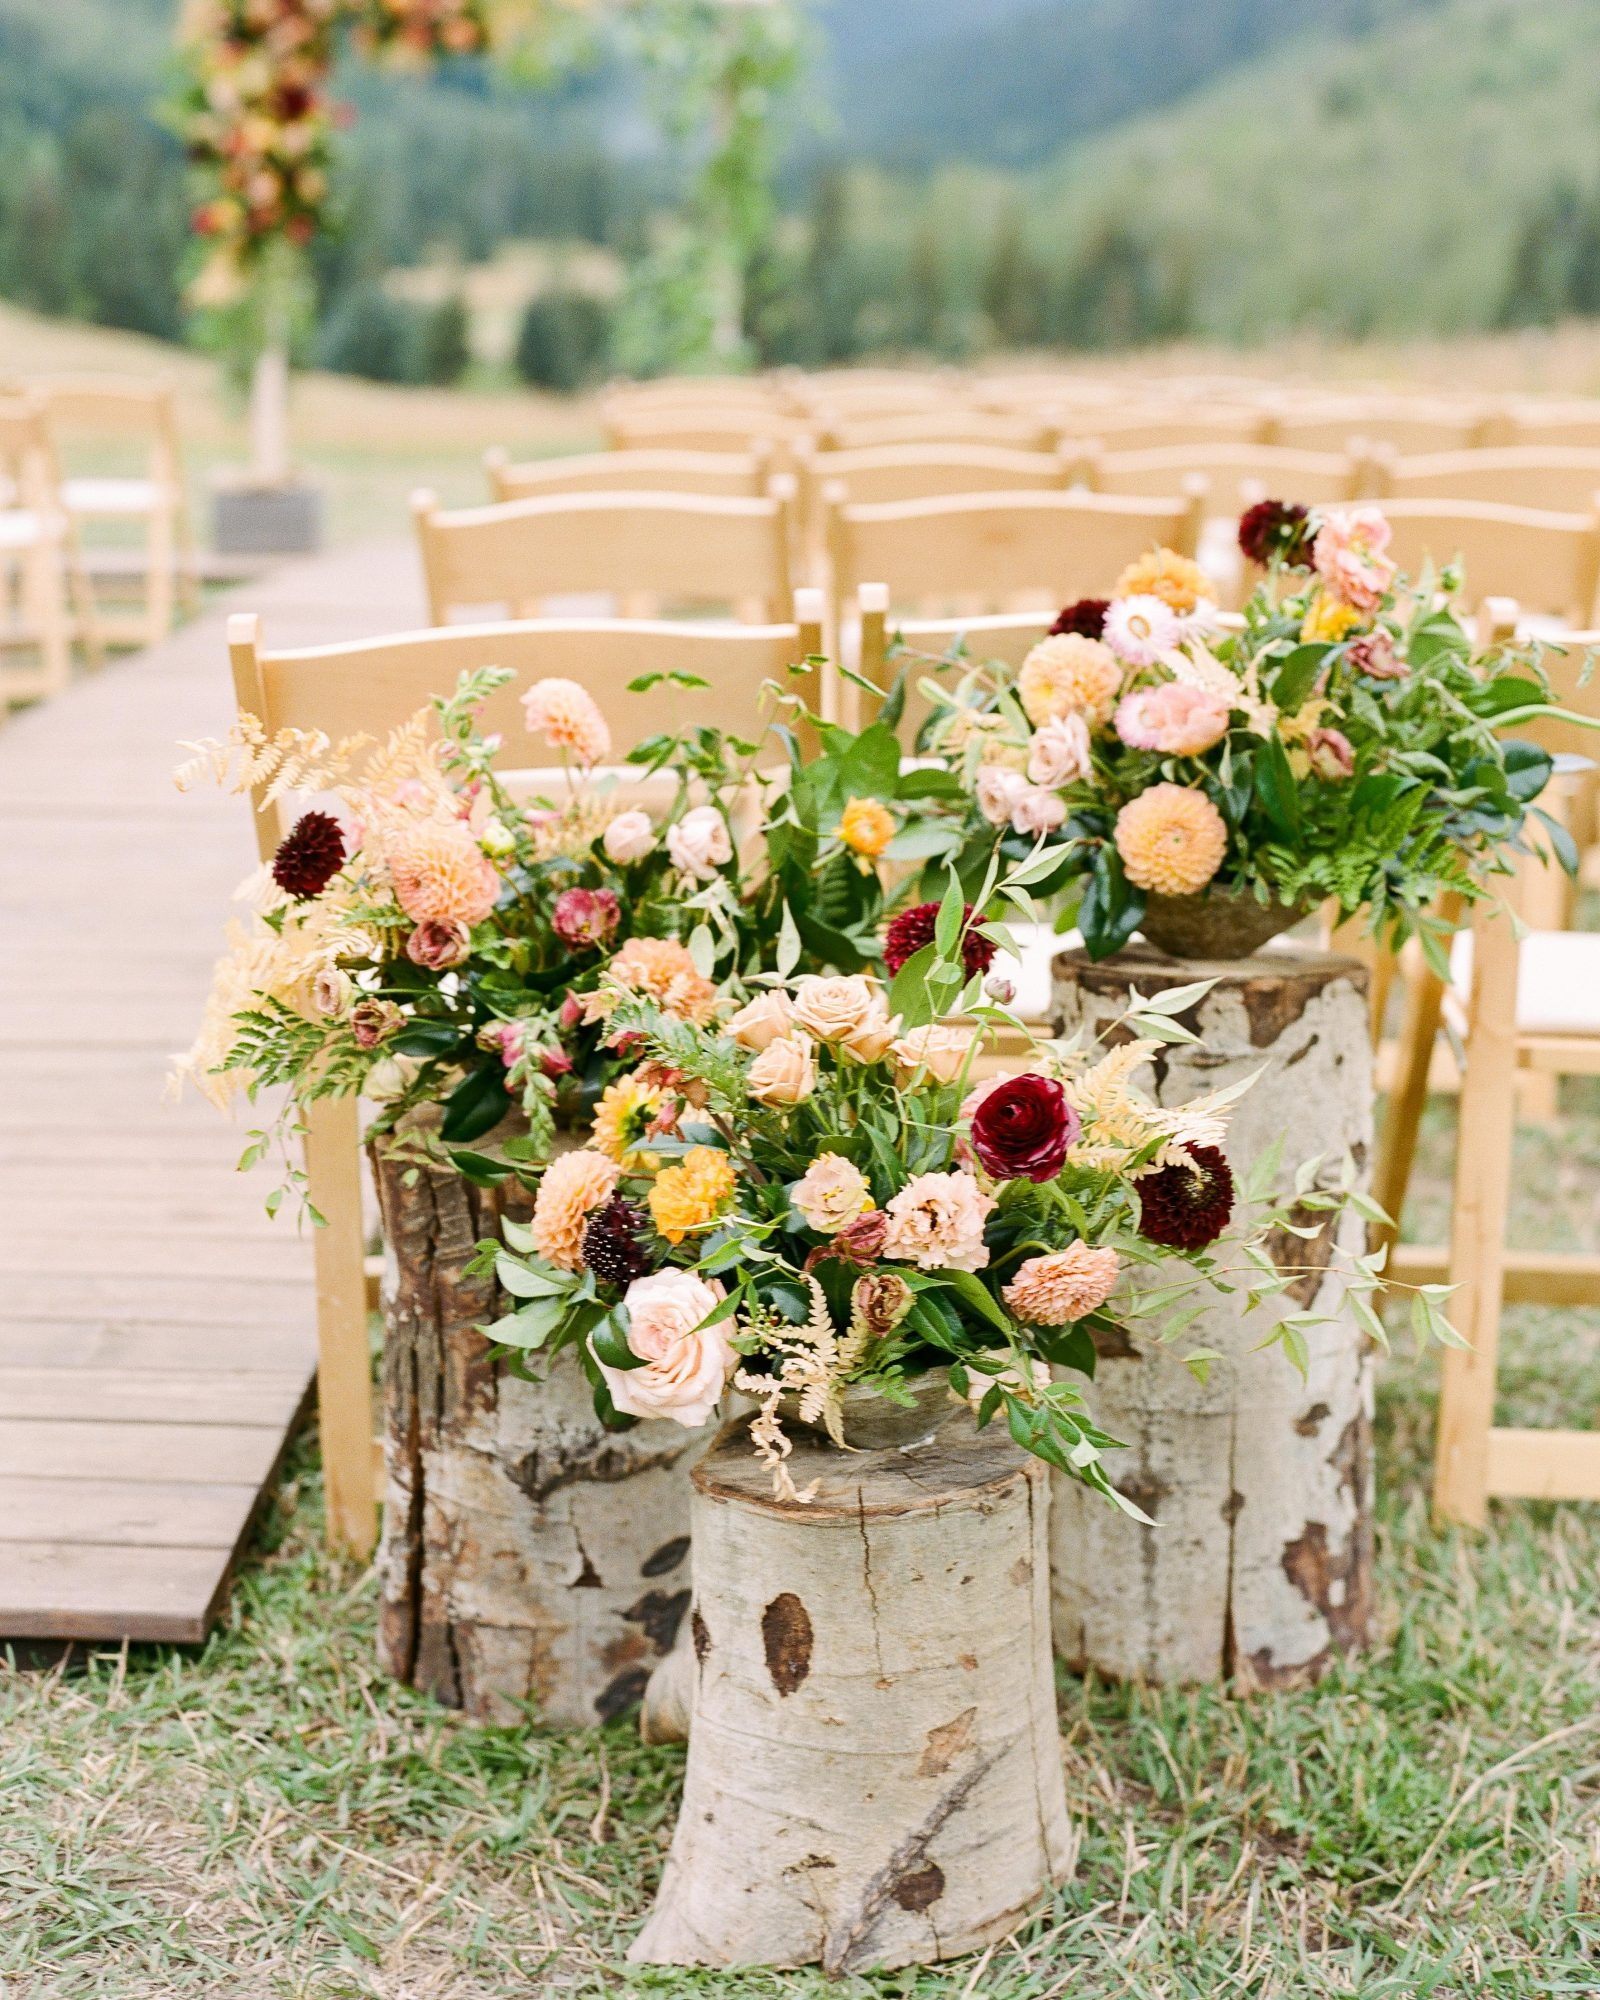 jill phil wedding outdoor ceremony decor featuring flowers and logs